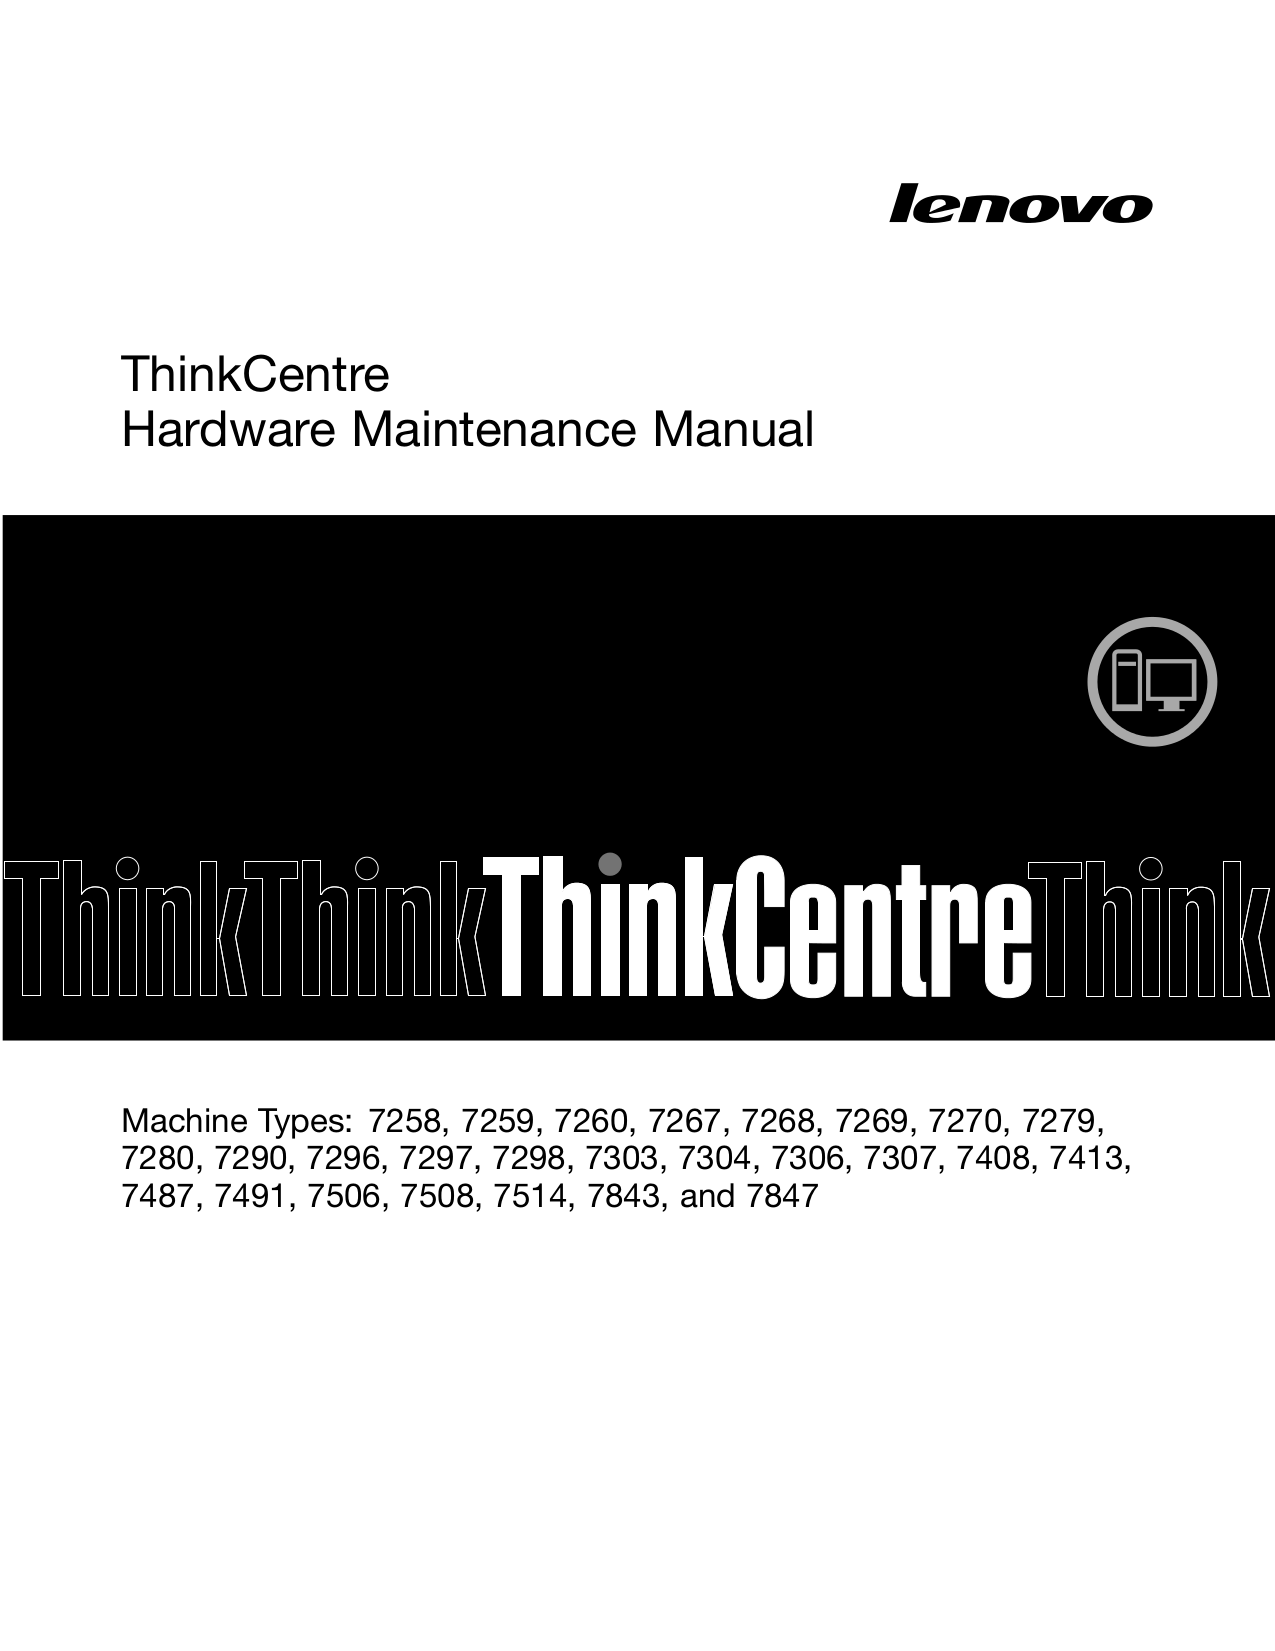 pdf for Lenovo Desktop ThinkCentre M58e 7258 manual